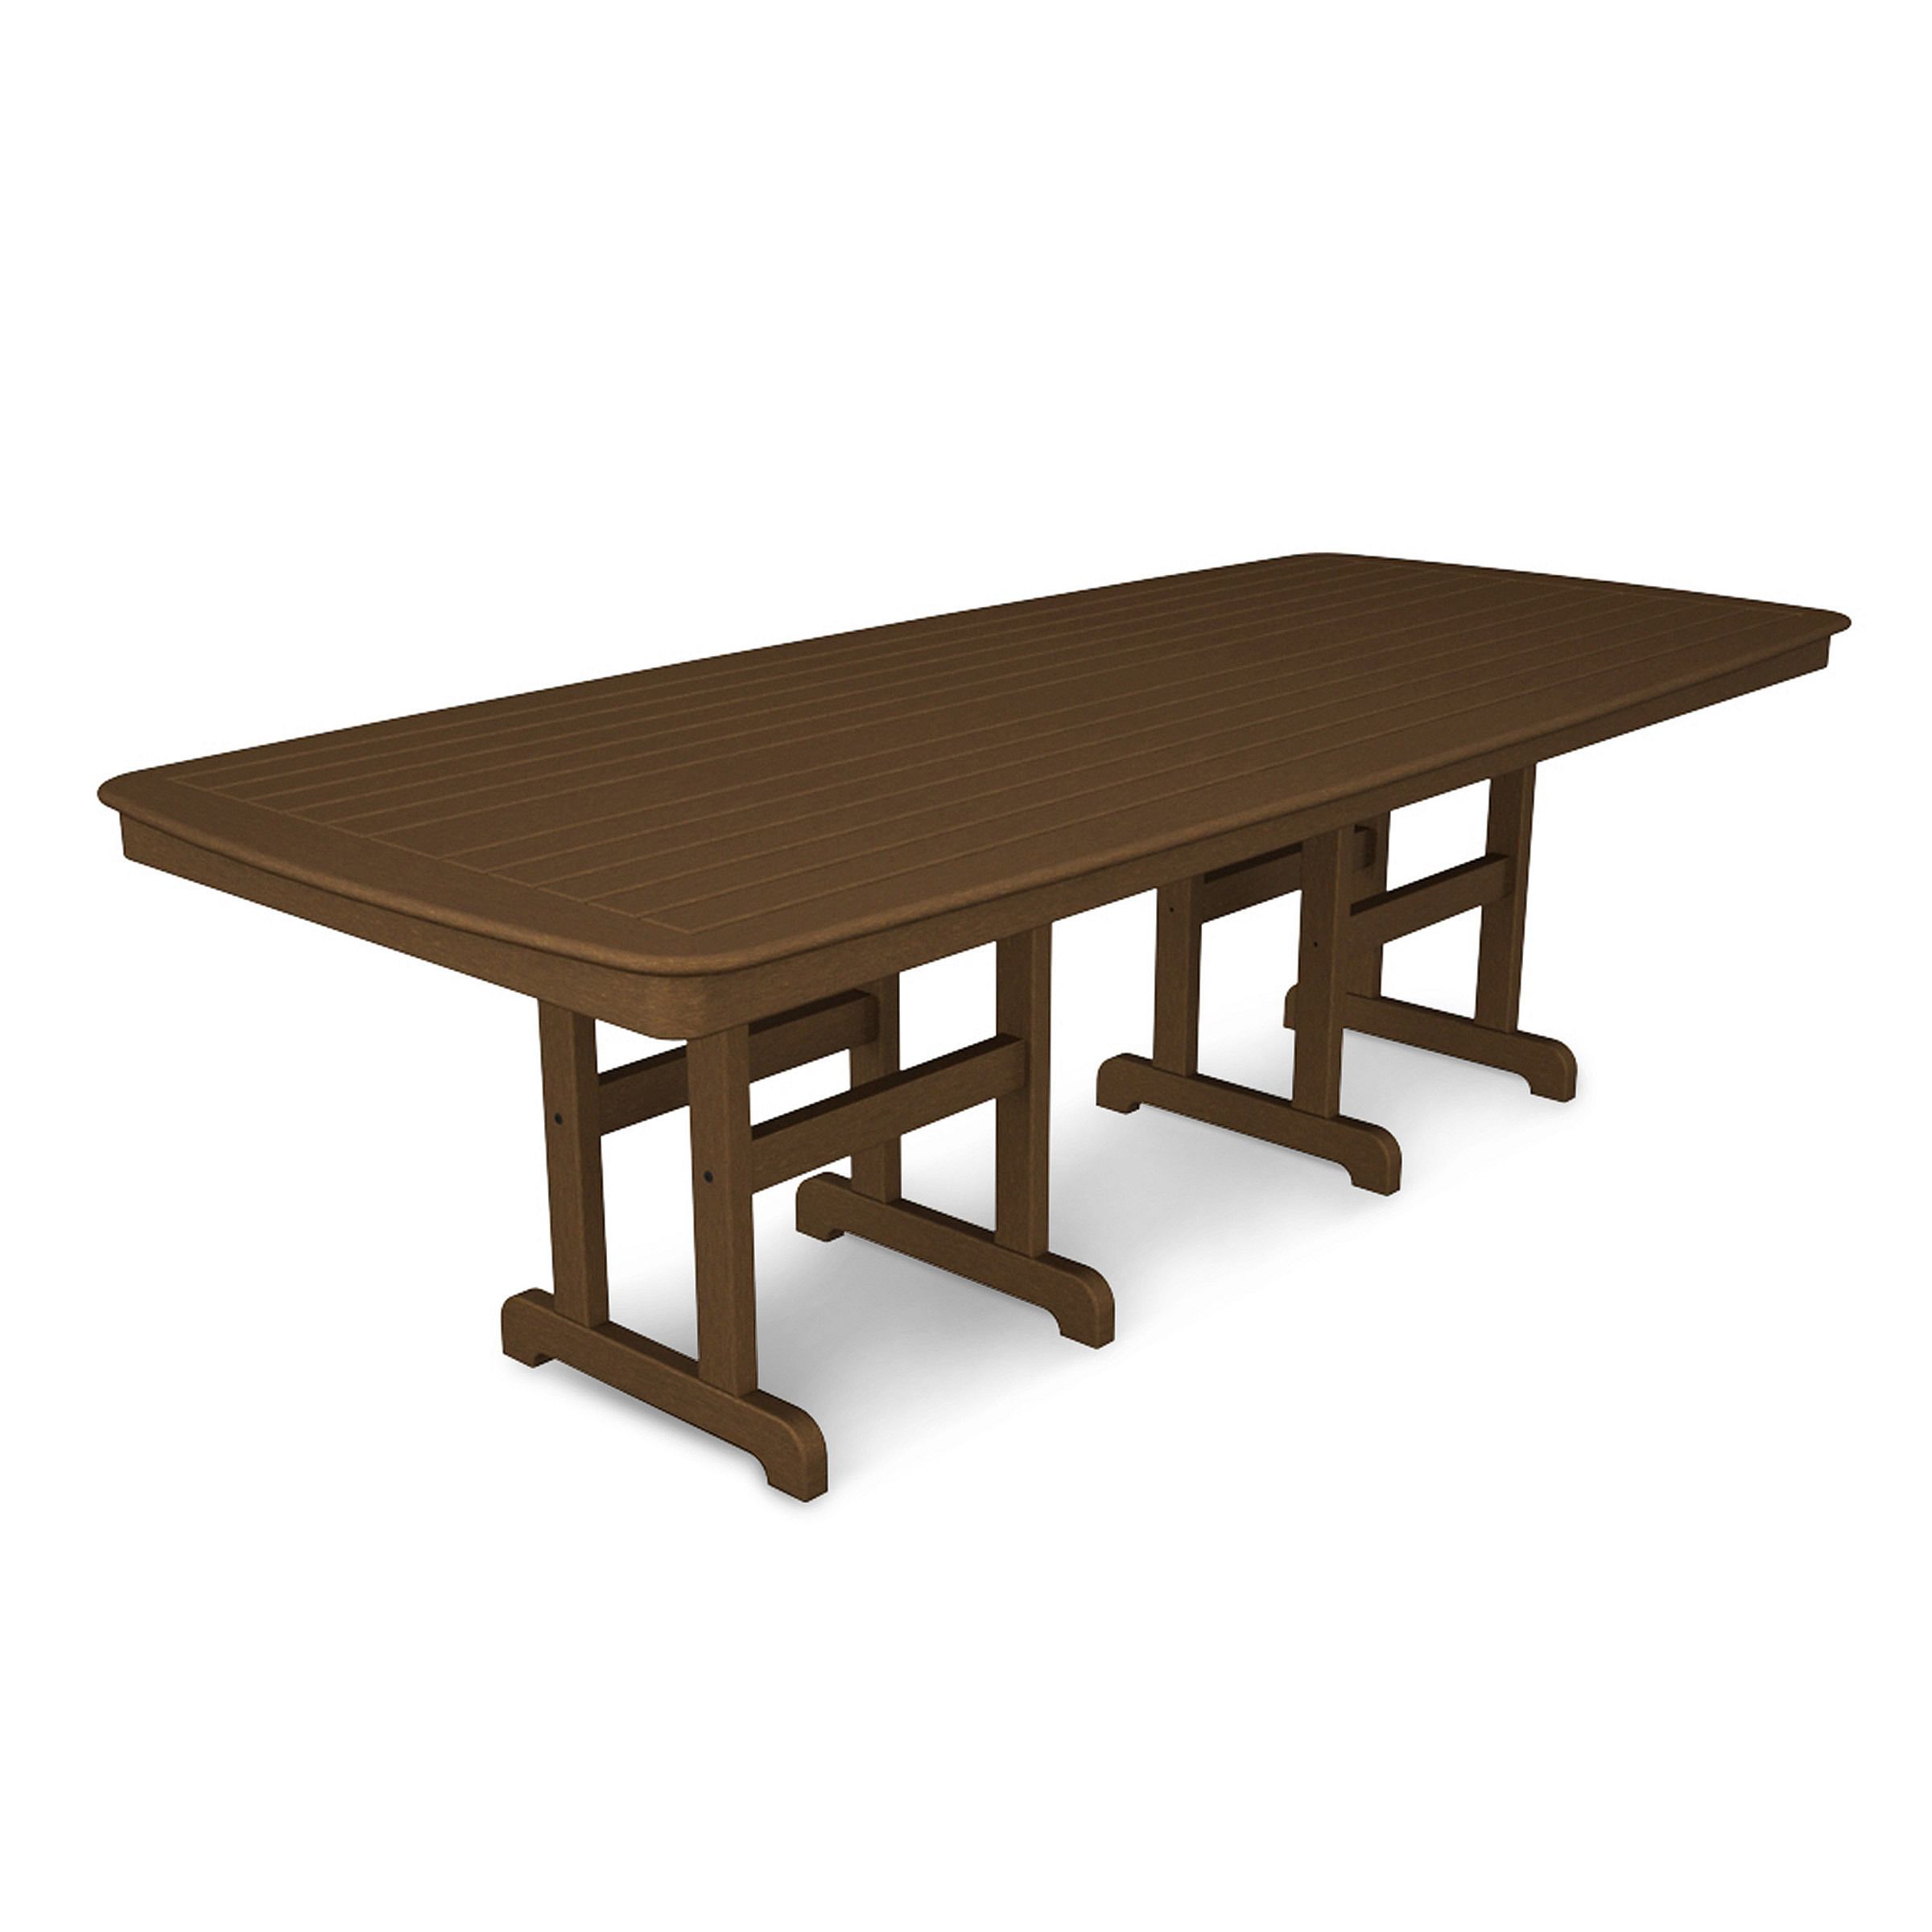 POLYWOOD Nautical 44 x 96 in Dining Table